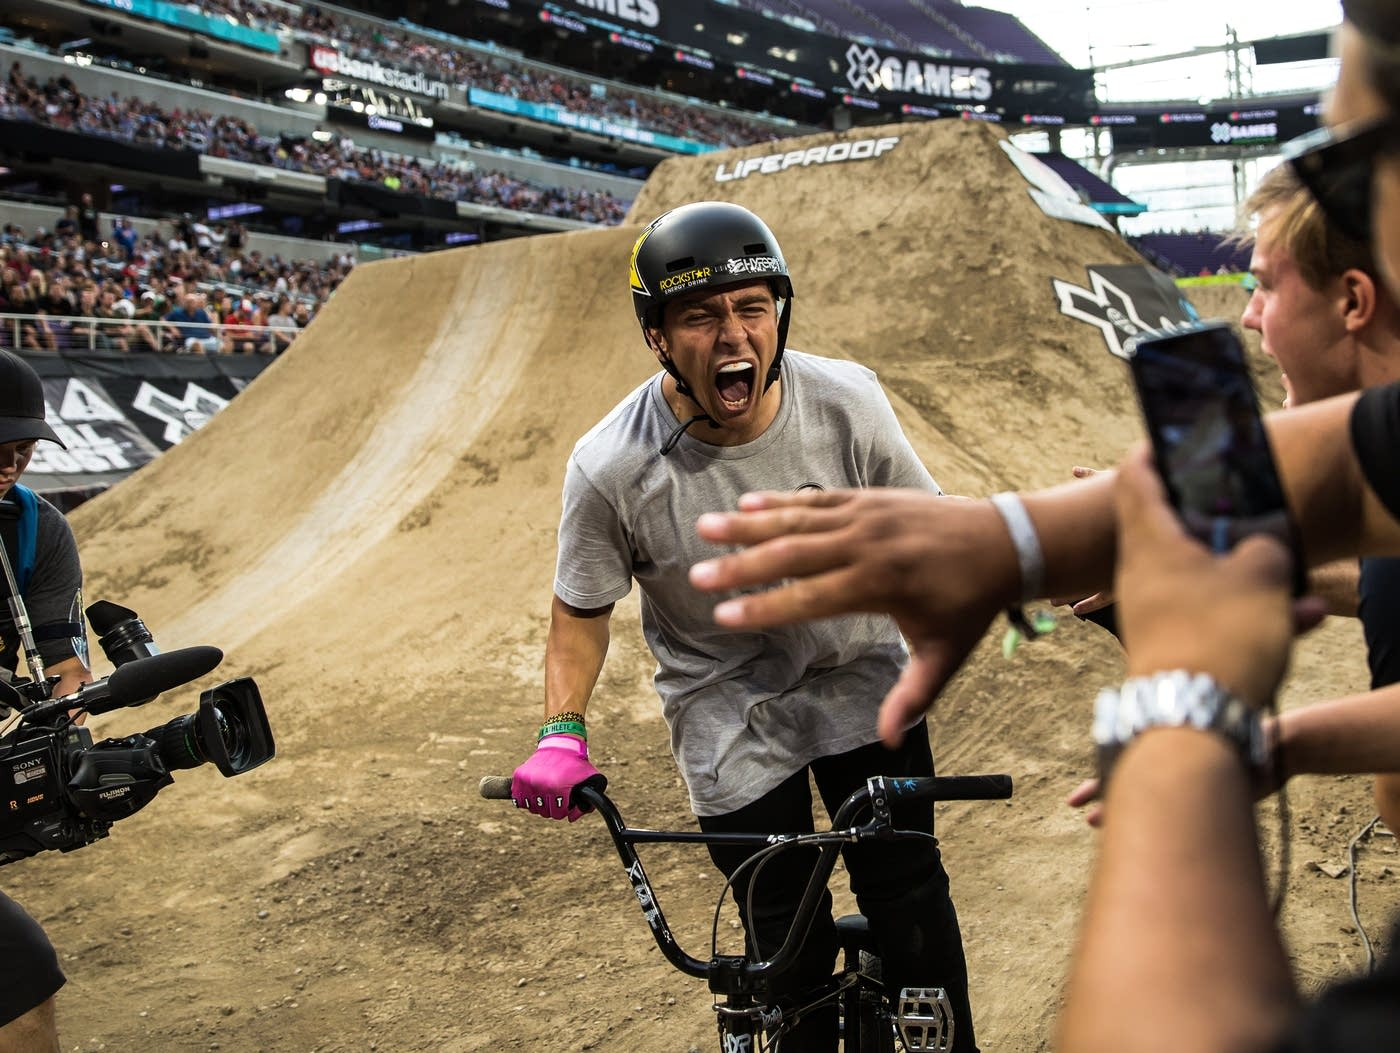 BMX rider Brandon Loupos celebrates after taking the lead in the BMX dirt final during X Games Minneapolis in U.S. Bank Stadium on July 21, 2018. Of three runs, Loupos' best score was 95 out of 100, and he finished in first place. (Lacey Young, MPR News)